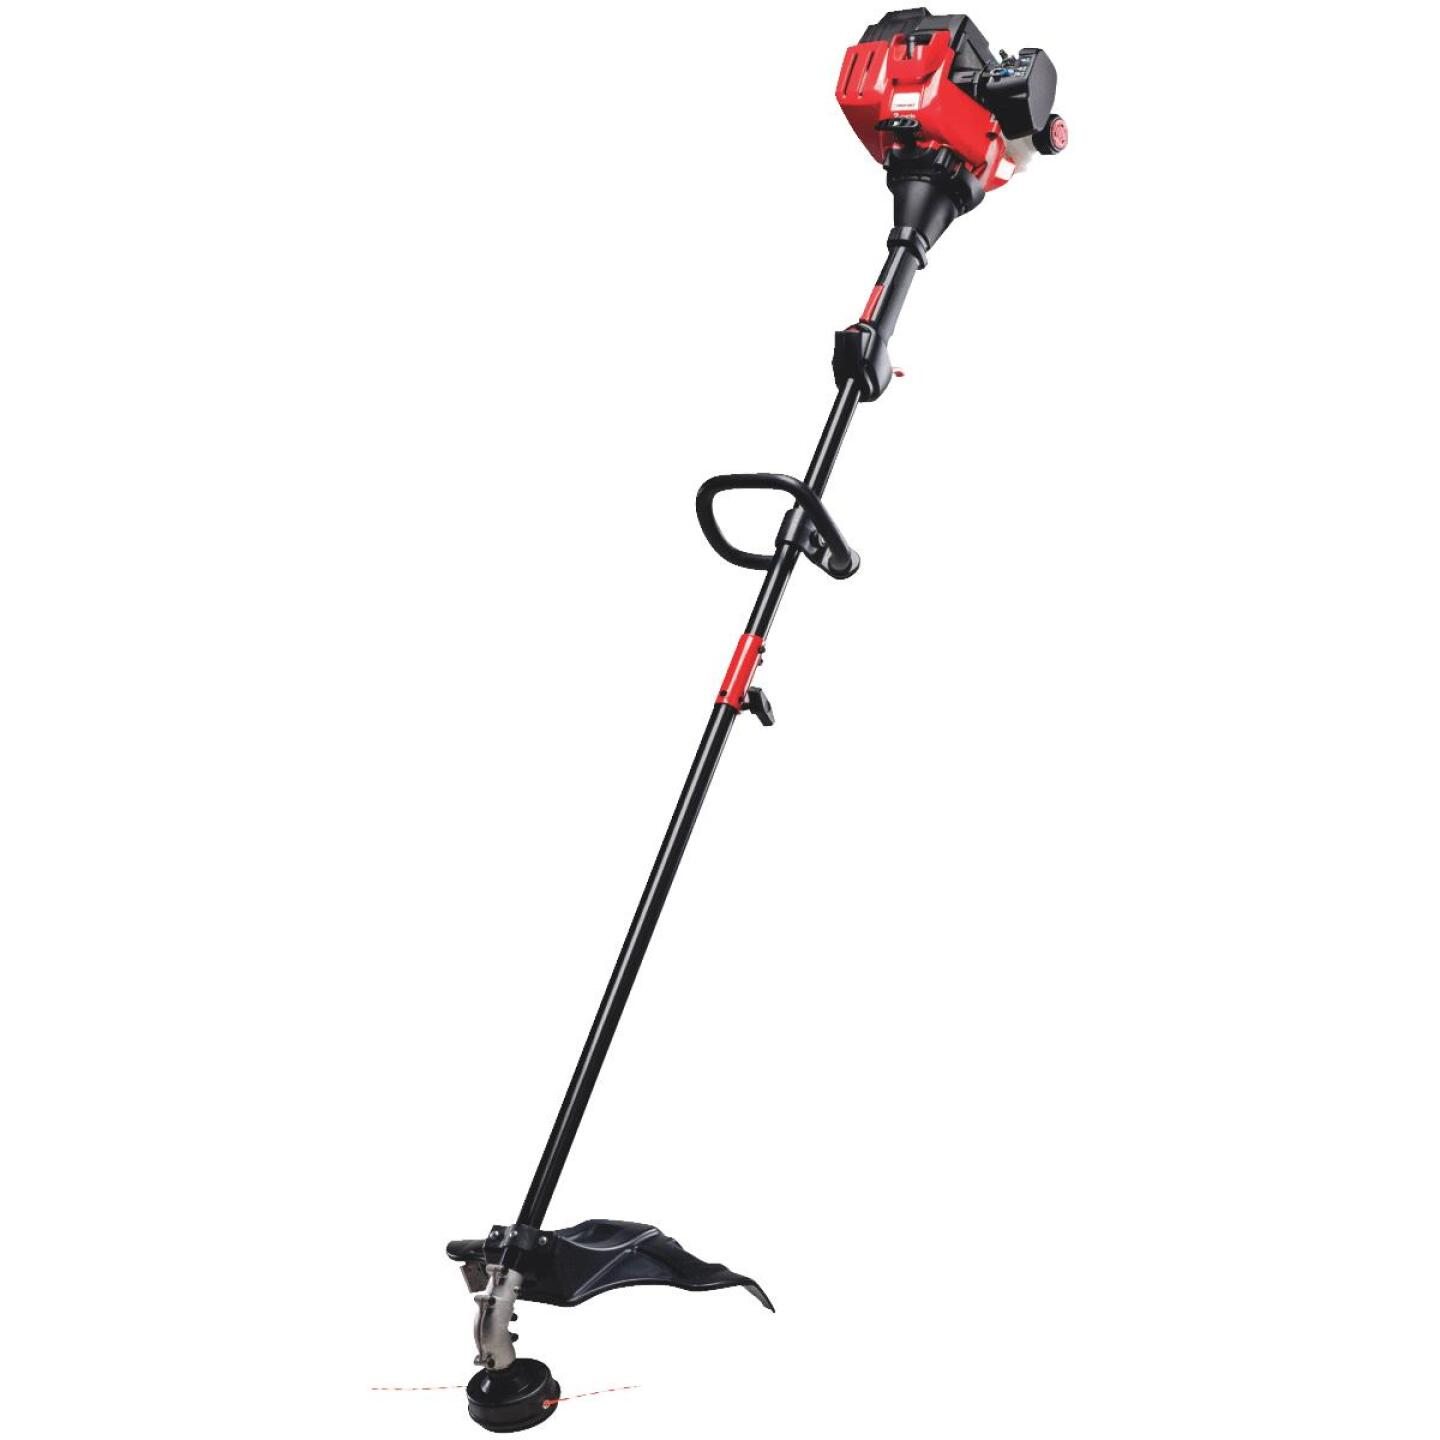 Troy-Bilt TB252S 25cc 2-Cycle Straight Shaft Gas Trimmer Image 3